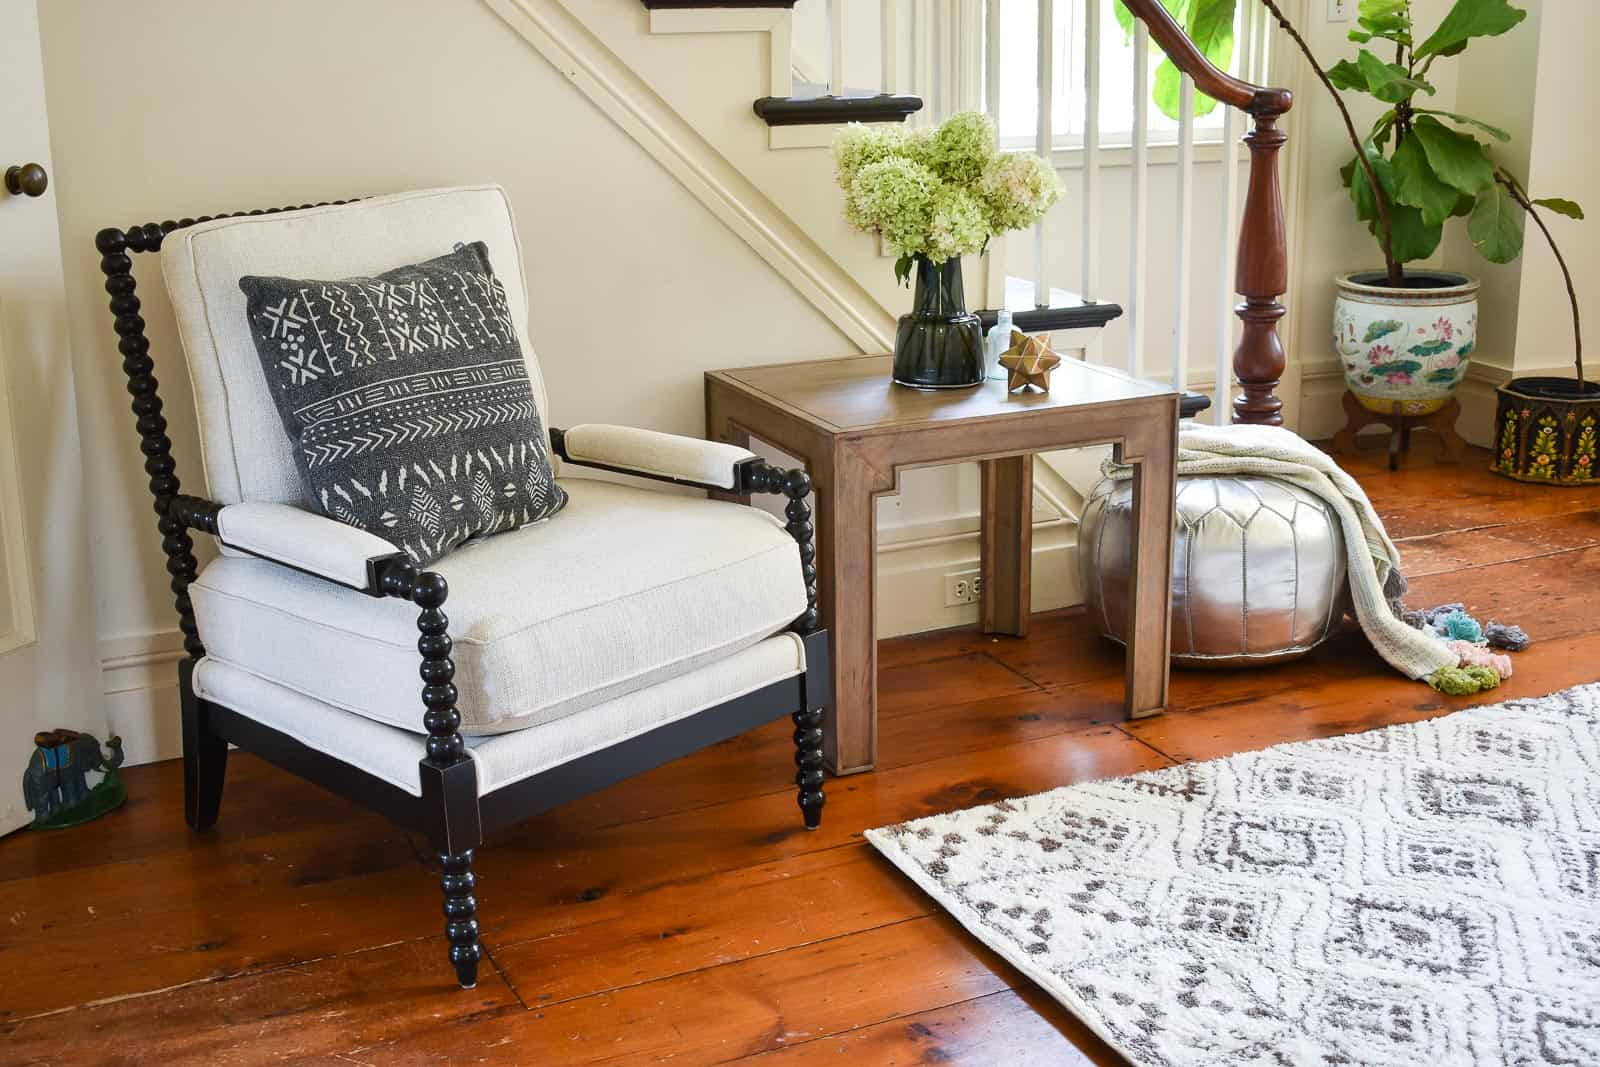 mudcloth pillow on spindle chair